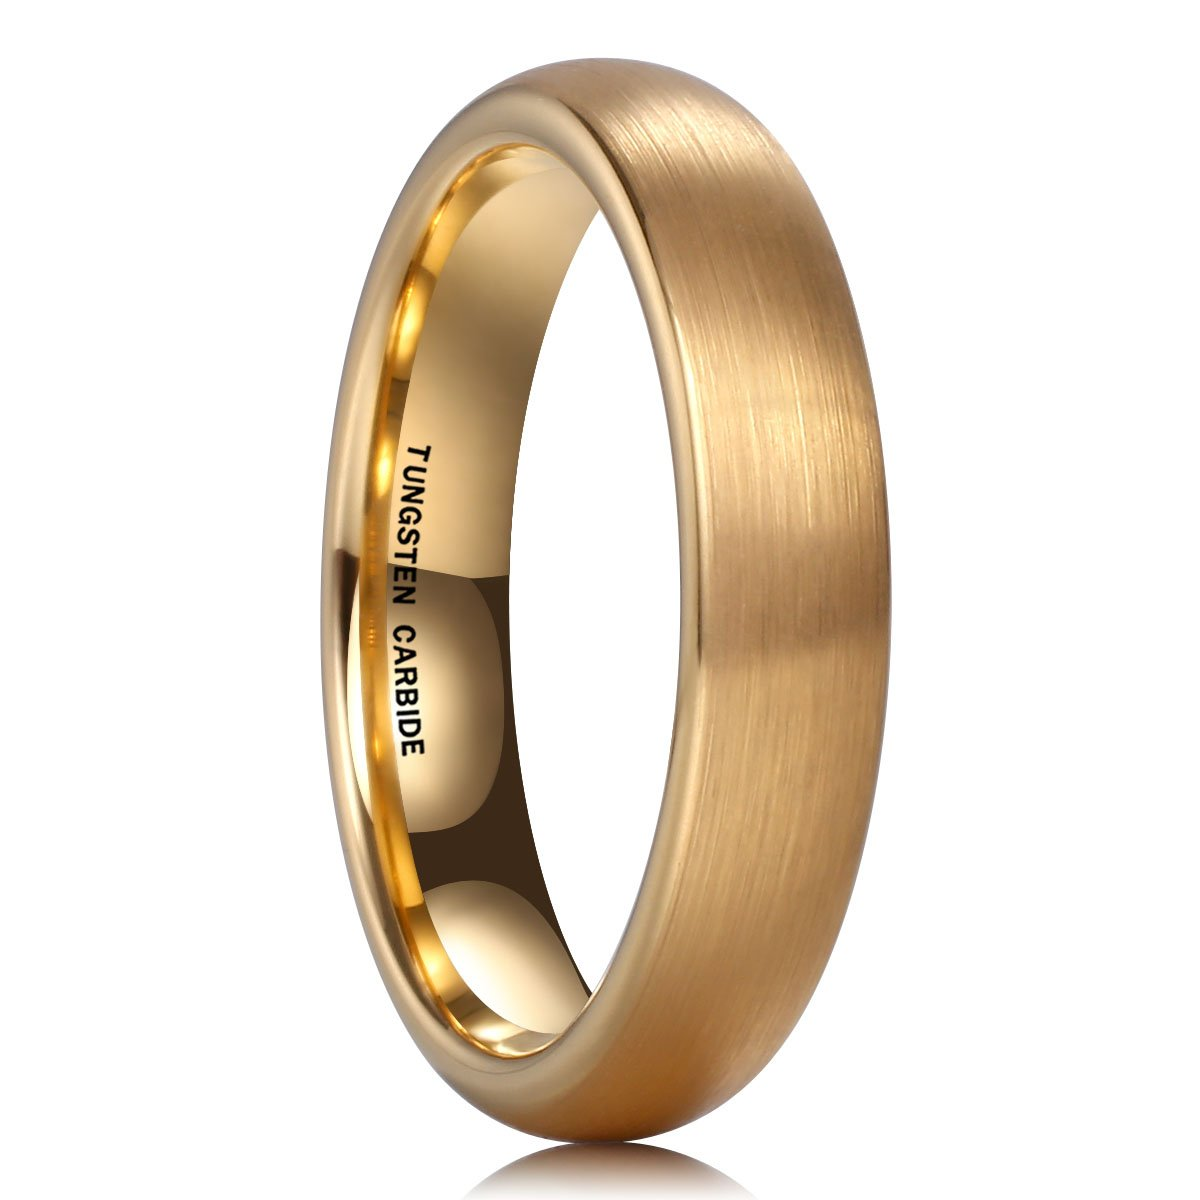 NaNa Chic Jewelry 18K Gold Plated 4mm Tungsten Carbide Ring Wedding Engagement Band Brushed Domed for Women Comfort Fit(8.5)